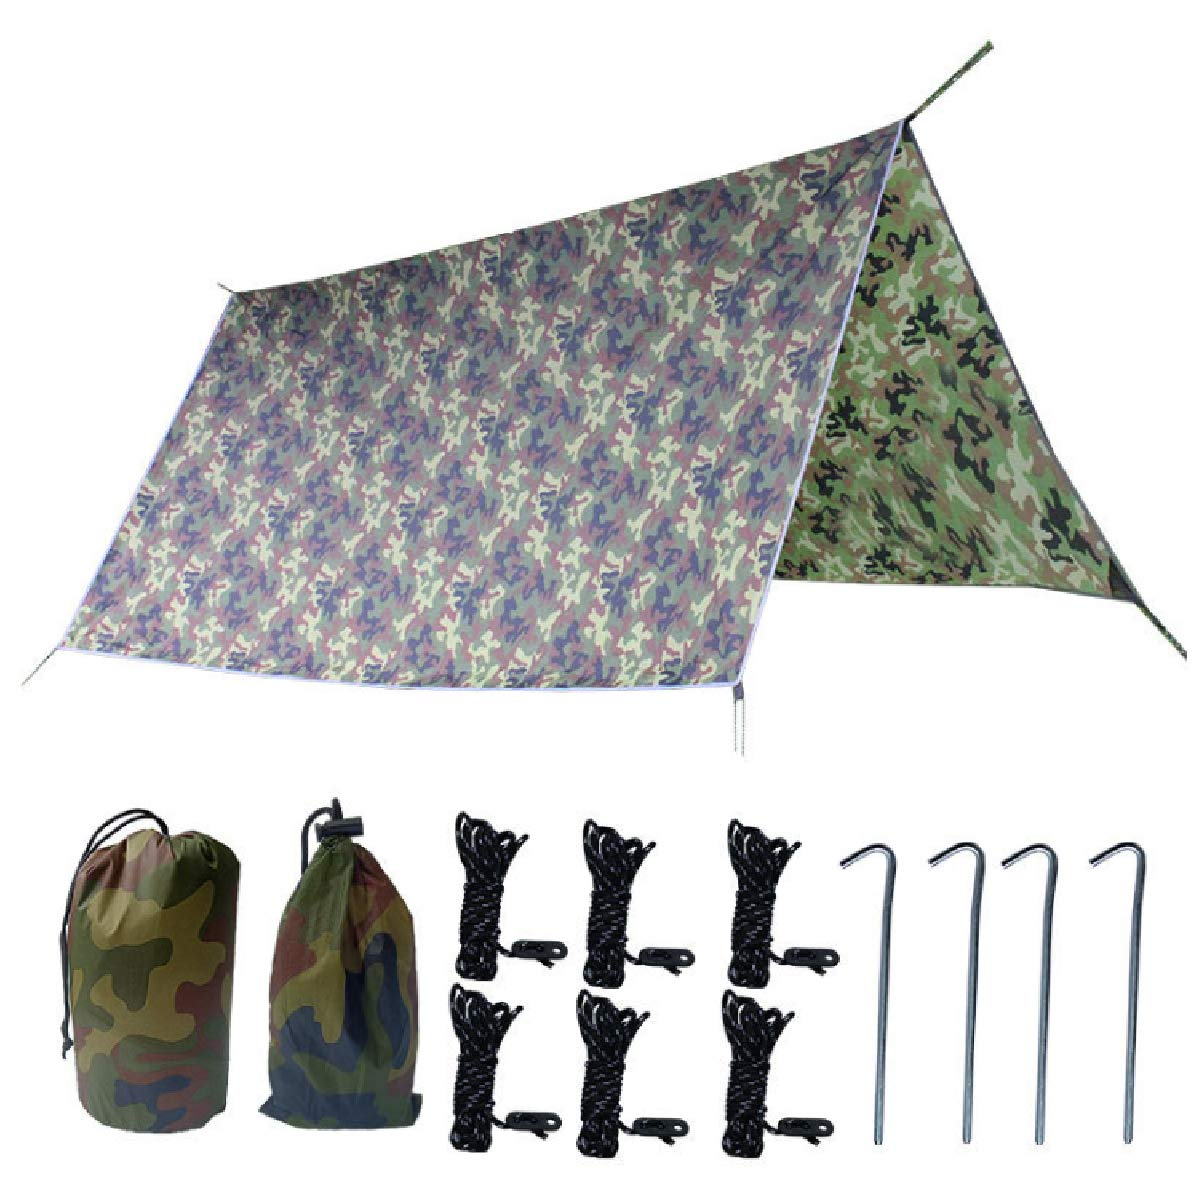 TRIWONDER Waterproof Hammock Rain Fly Tent Tarp Footprint Camping Shelter Ground Cloth Sunshade Mat for Outdoor Hiking Beach Picnic (Camouflage+Accessories, L - 118 x 118in) by TRIWONDER